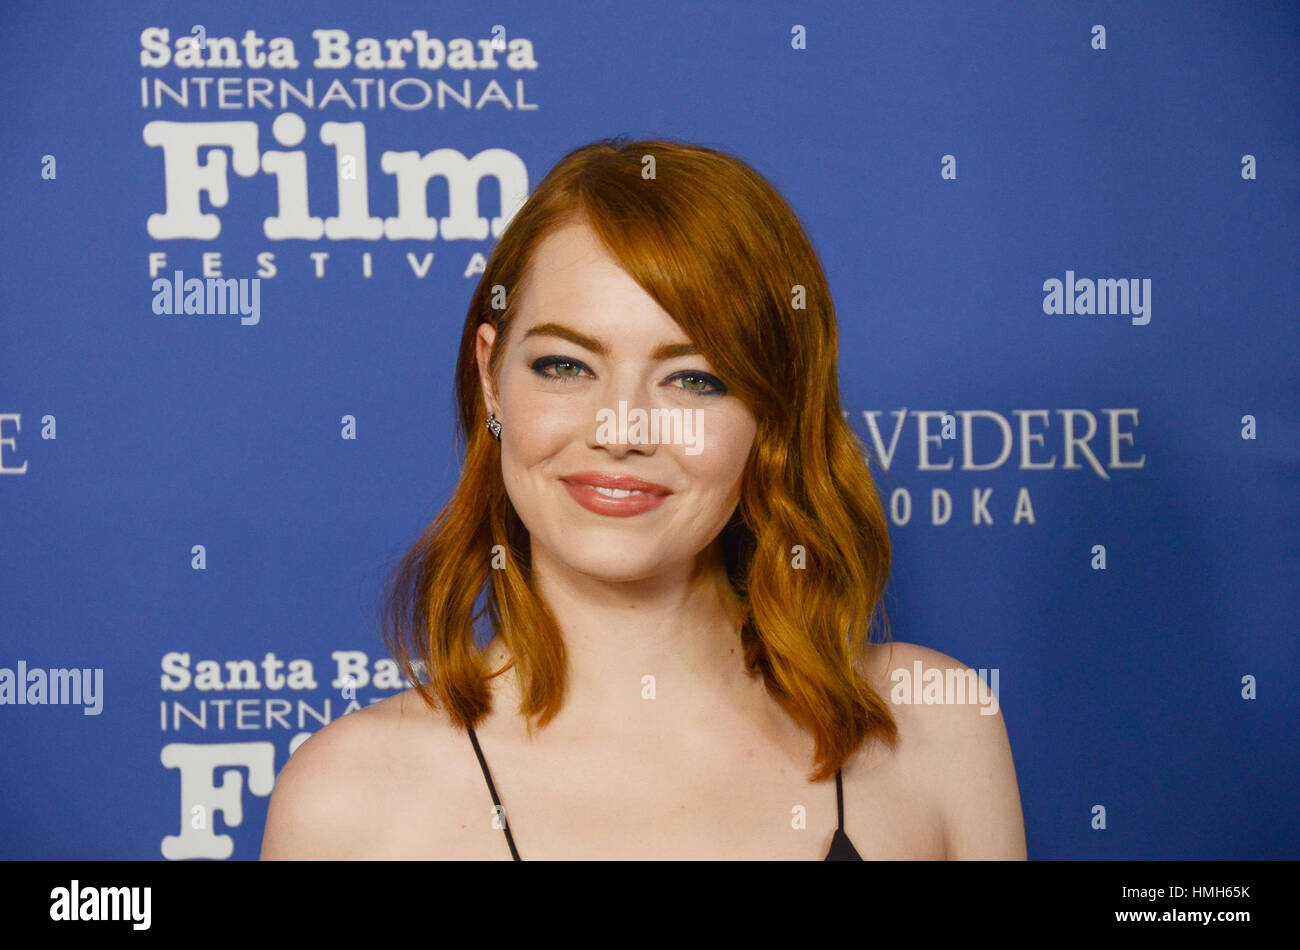 Santa Barbara, USA. 3rd Feb, 2017. Actress Emma Stone attends the Outstanding Performers Tribute honoring Ryan Gosling - Stock Image